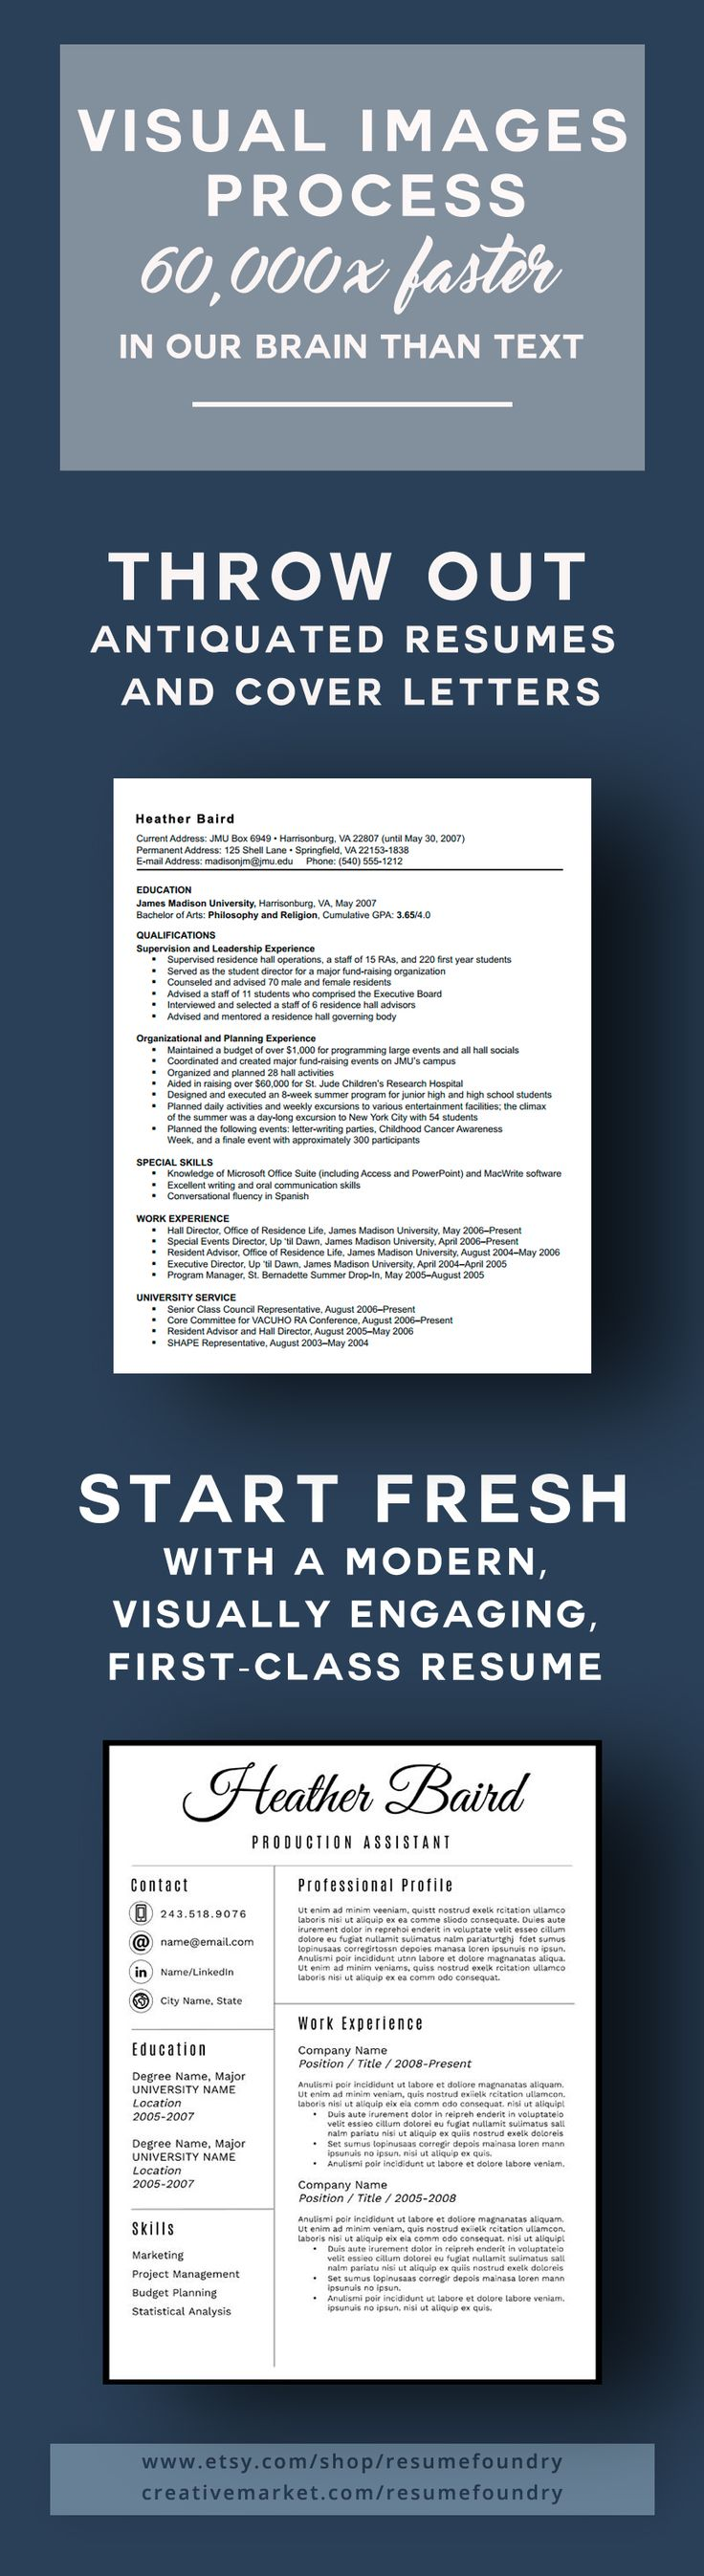 Visually Engaging Modern Resume  Modern Resume Tips